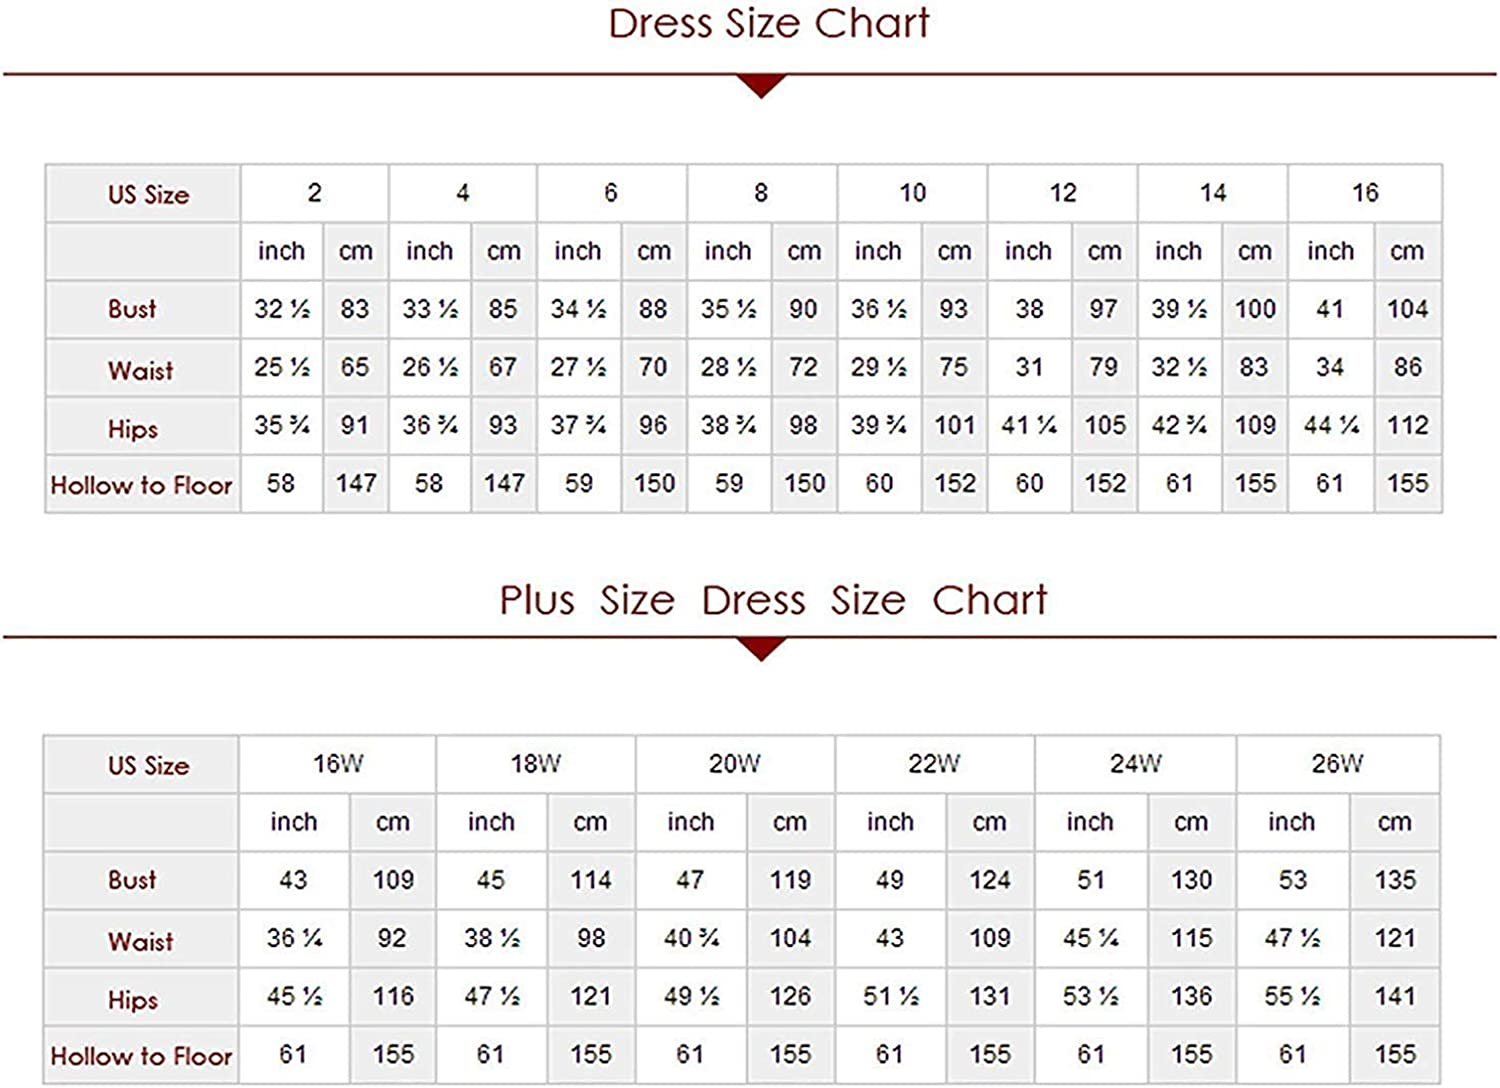 ChongXiao Off The Shoulder Prom Dresses Mermaid Lace Appliques Bridesmaid Dresses Long Formal Gowns for Women CX02